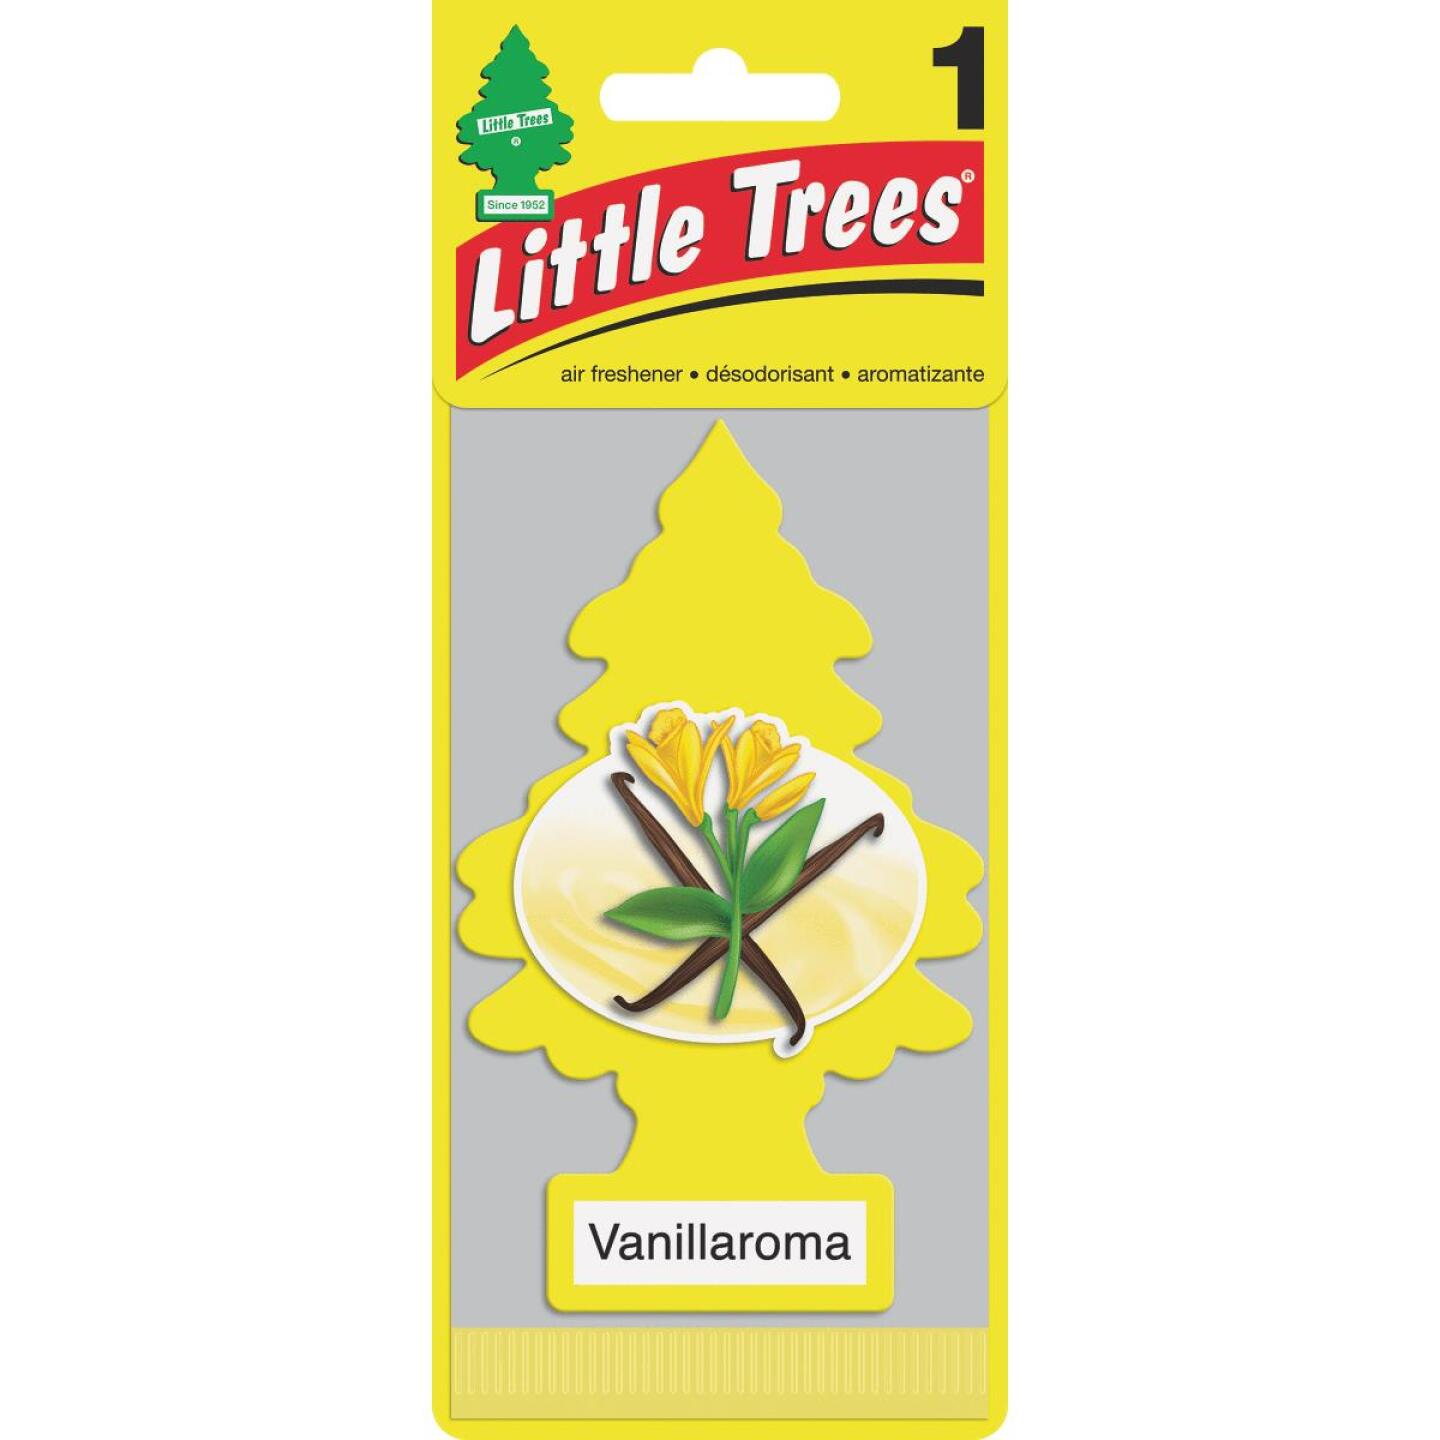 Little Trees Car Air Freshener, Vanillaroma Image 1